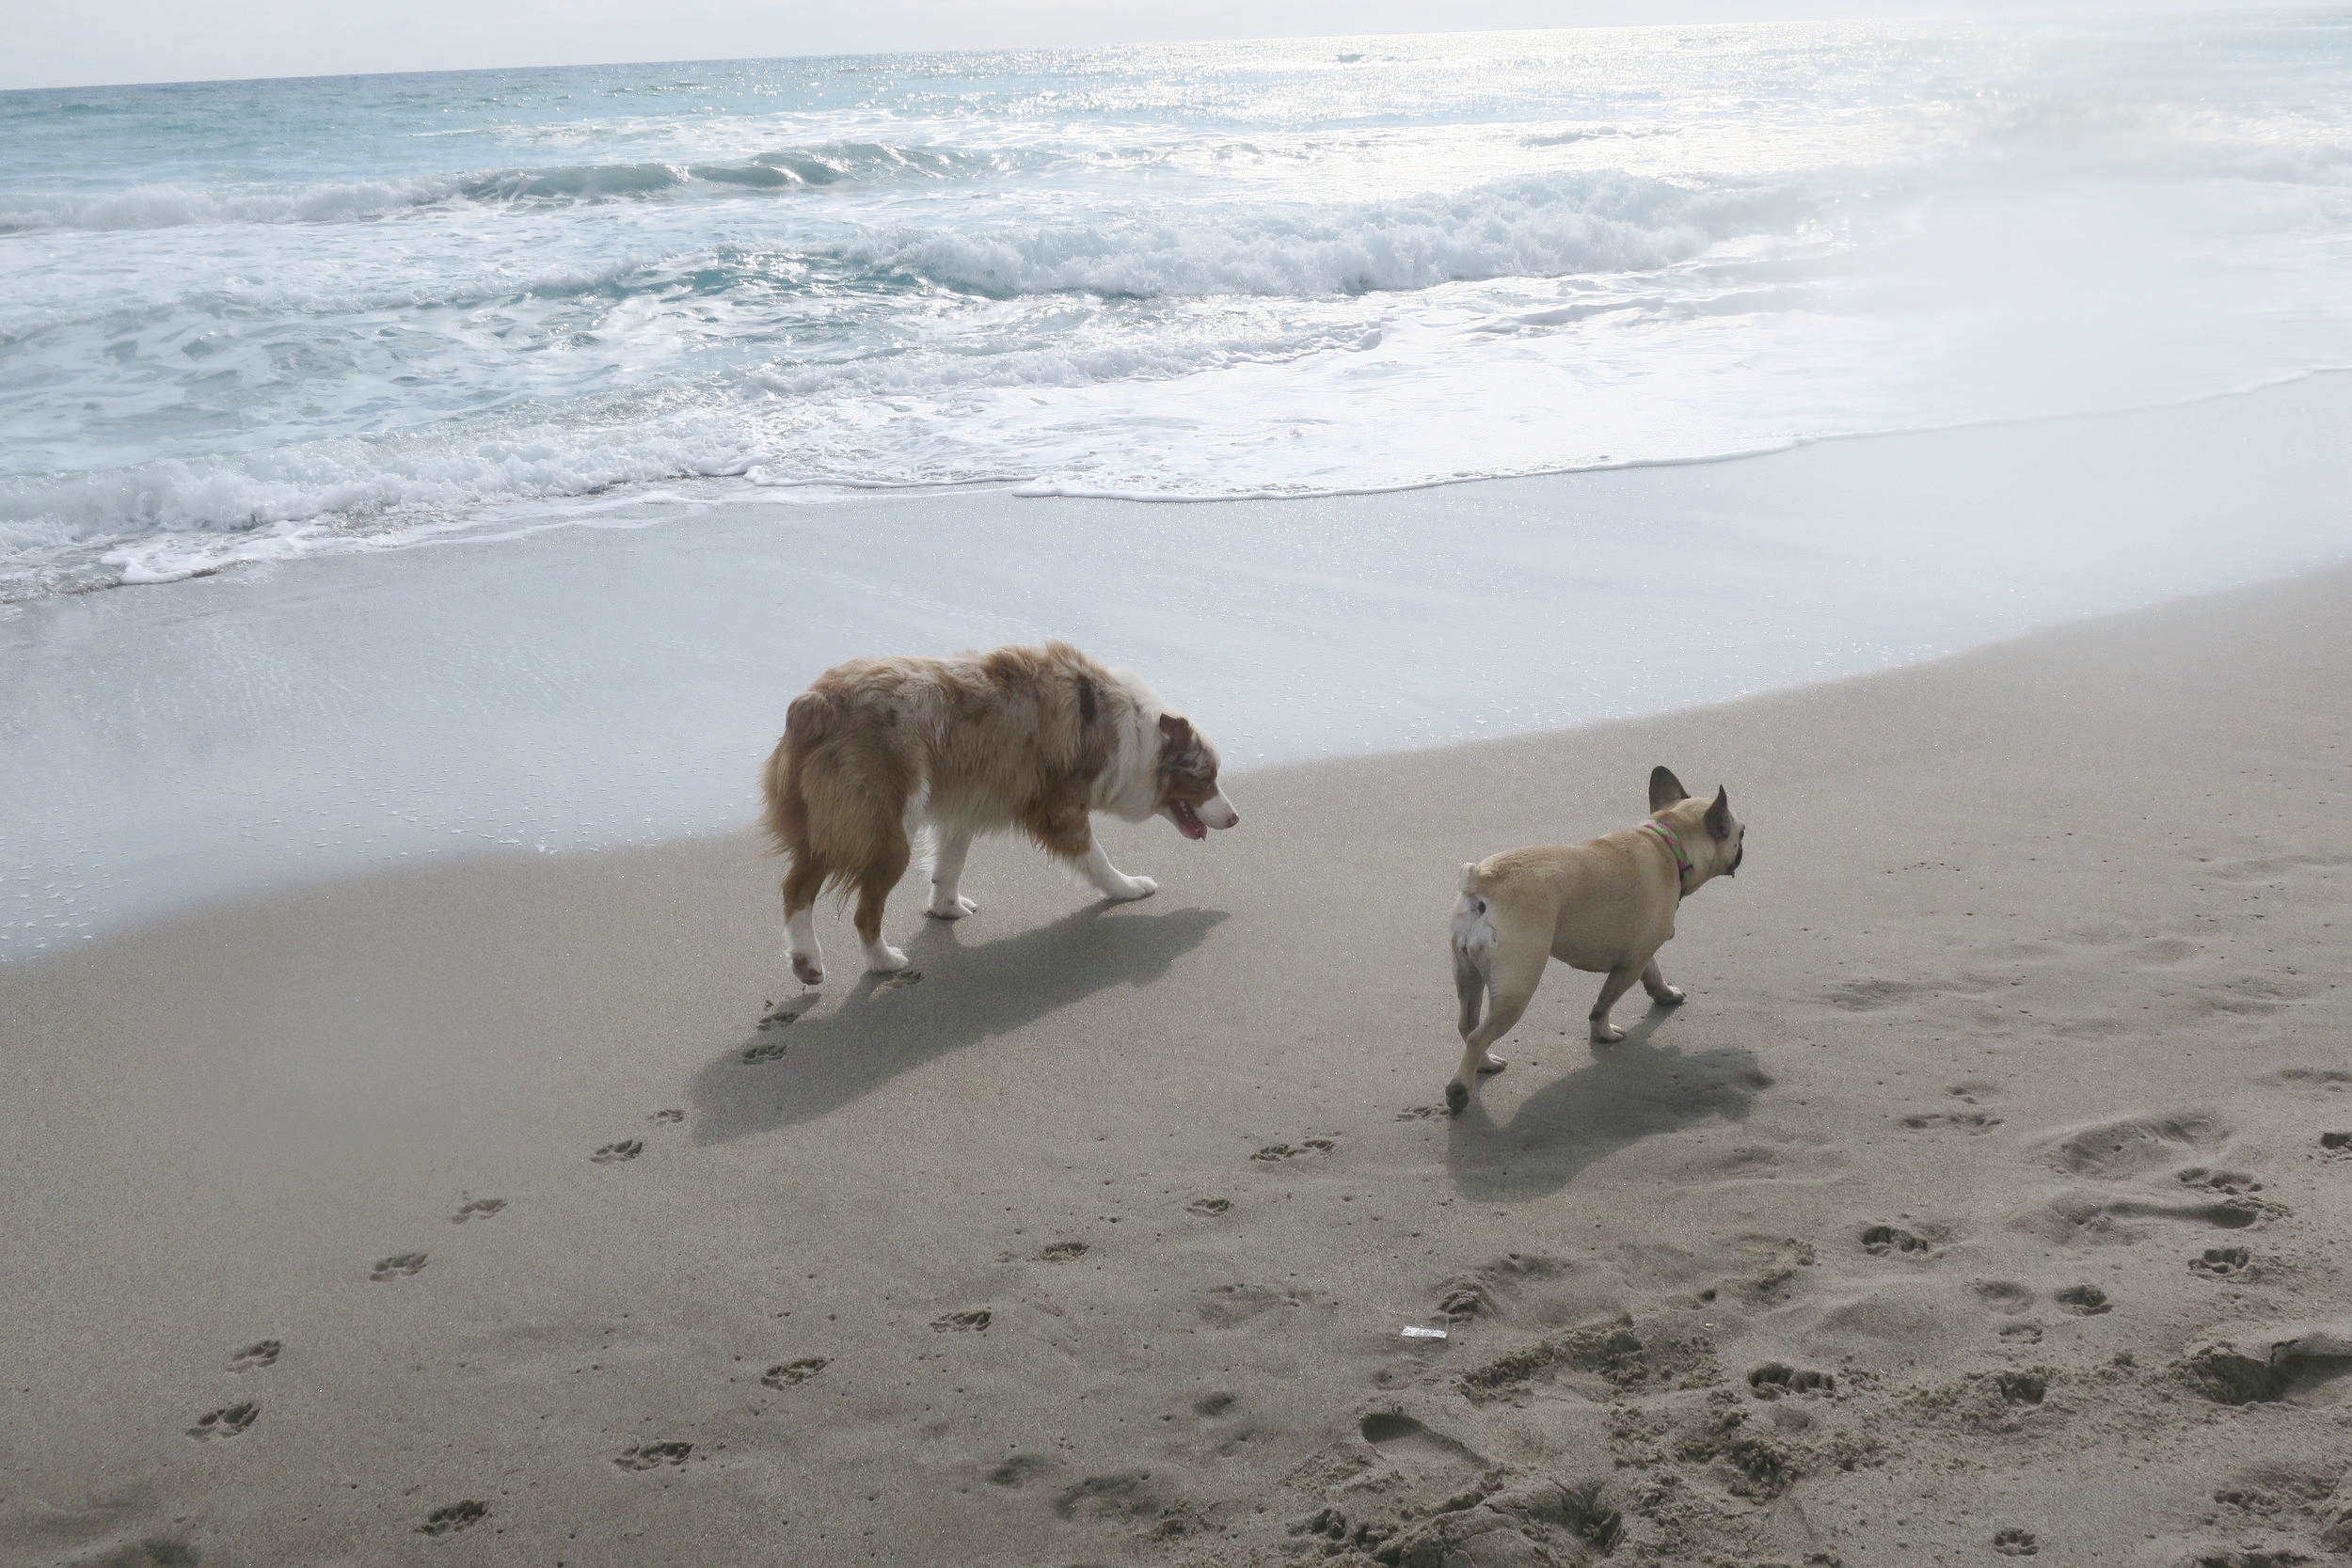 And always lots of new friends to be made at the dog beach